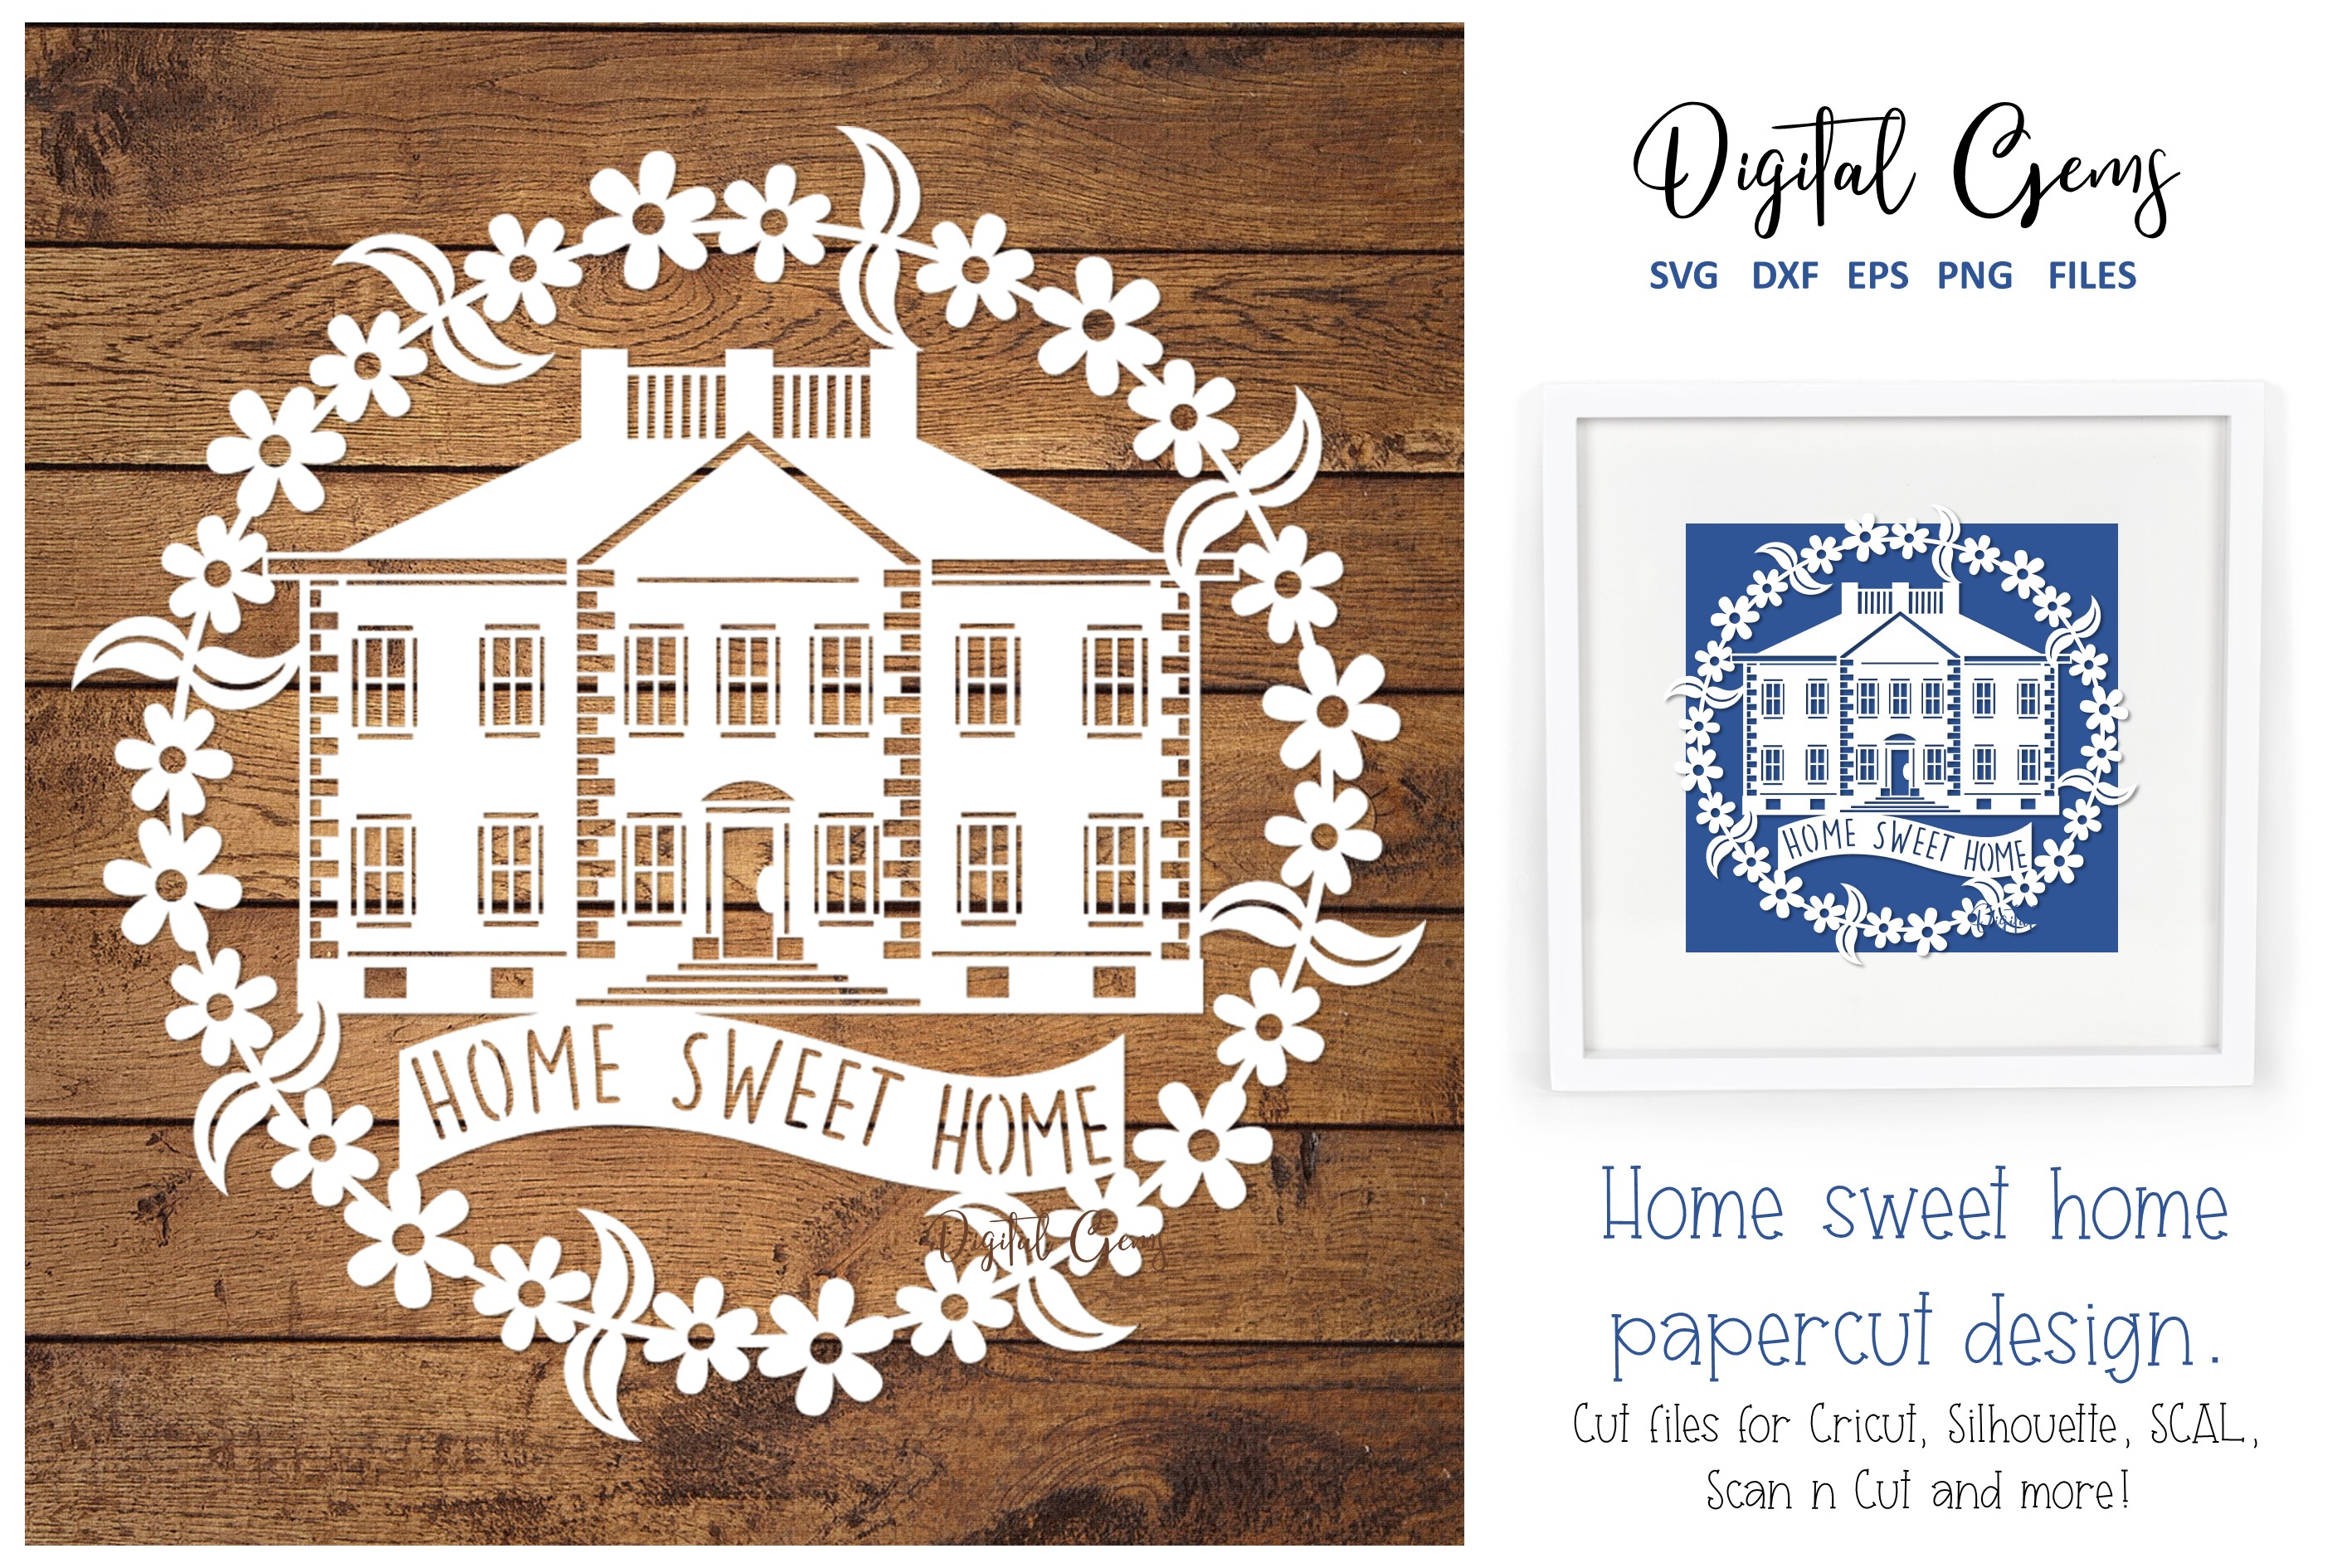 Download Free Home Sweet Home Papercut Design Graphic By Digital Gems SVG Cut Files